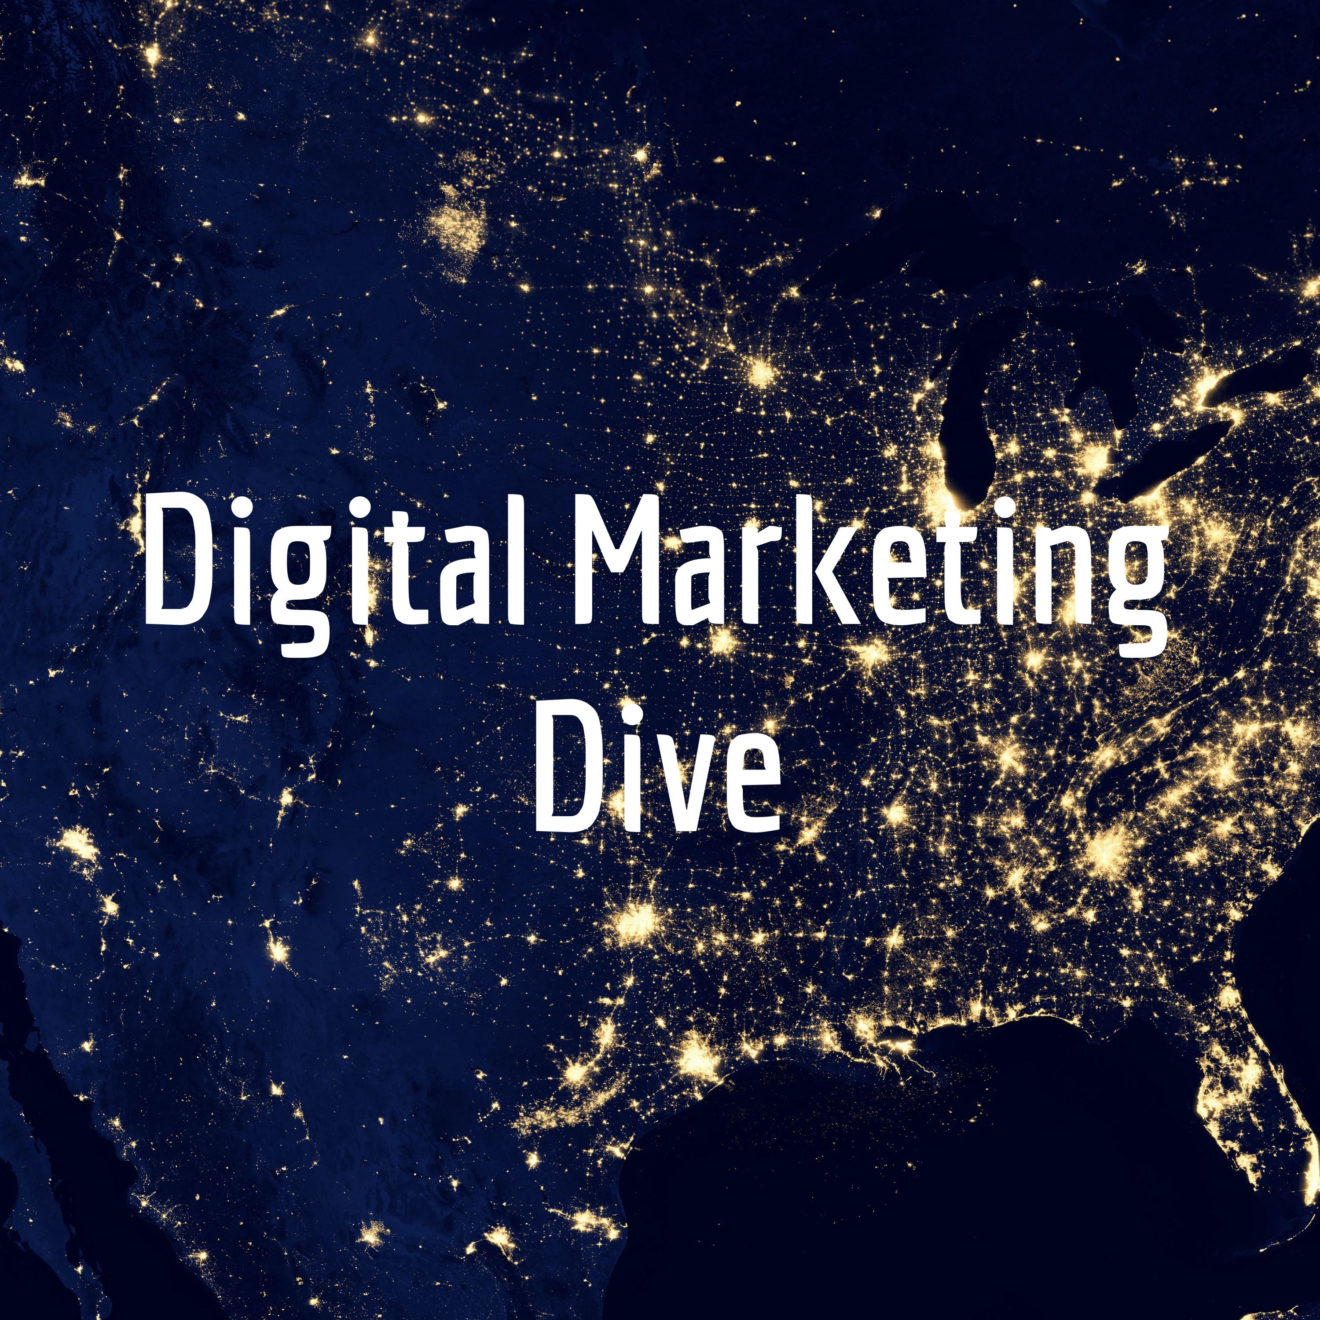 Digital Marketing Dive Album Art